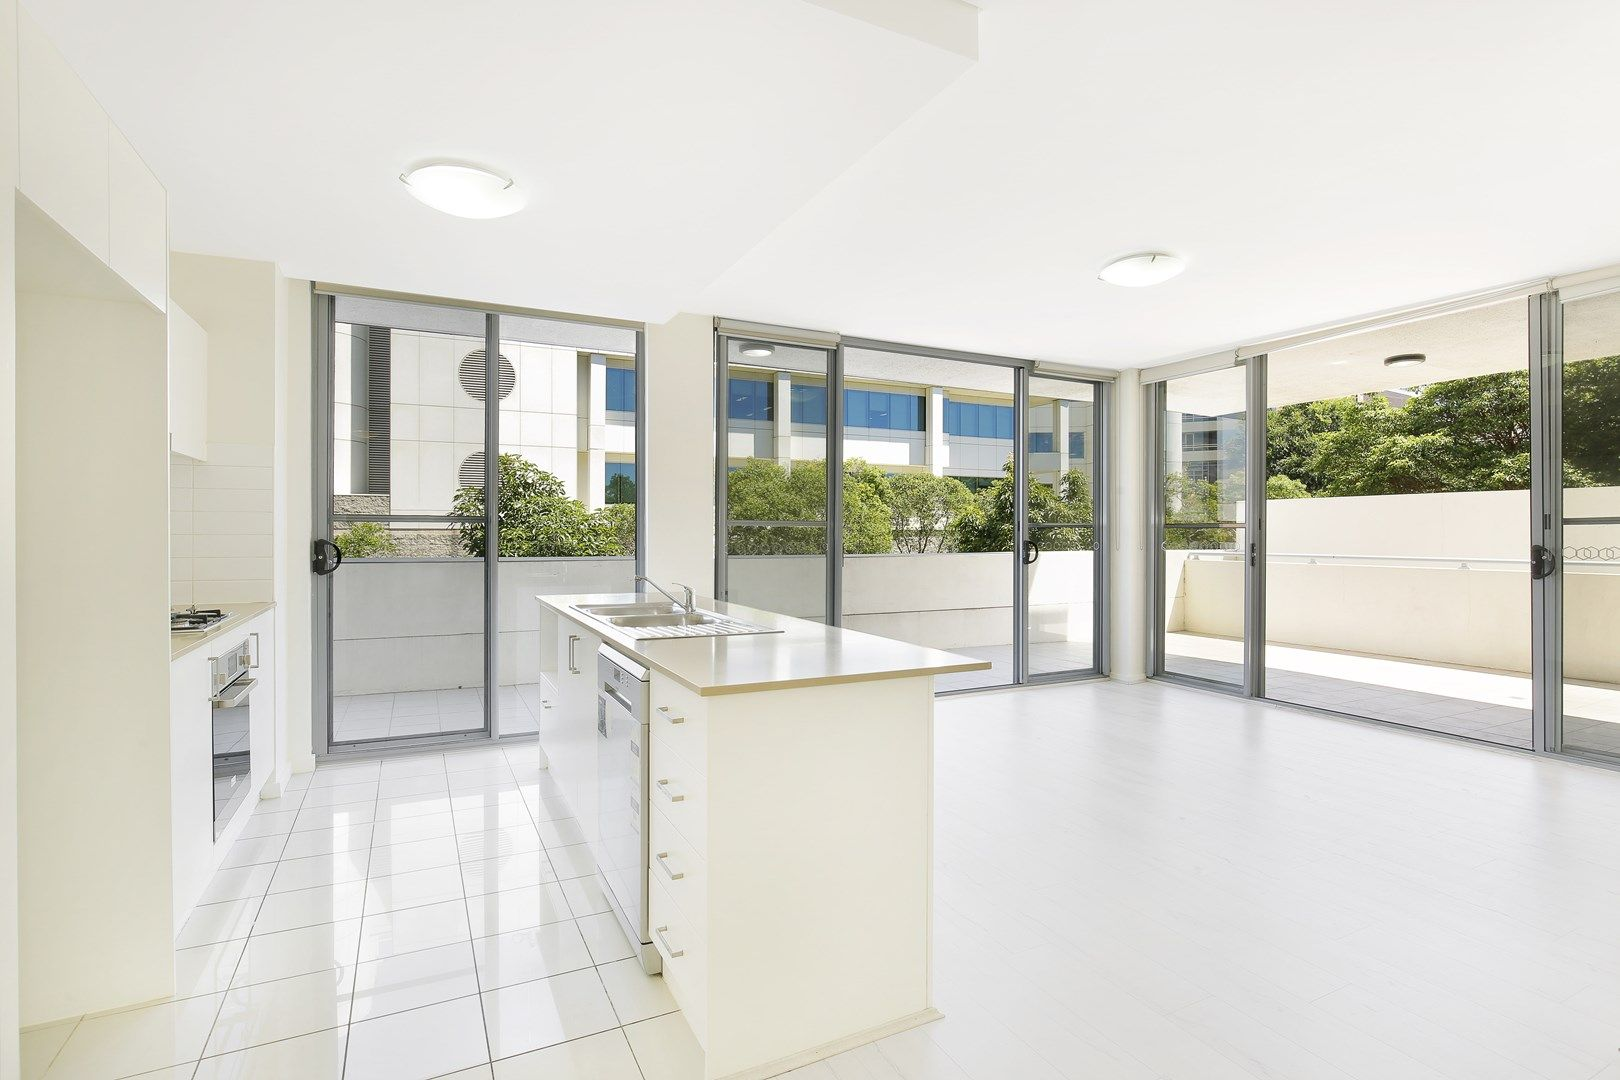 1/11 Atchison Street, Wollongong NSW 2500, Image 2